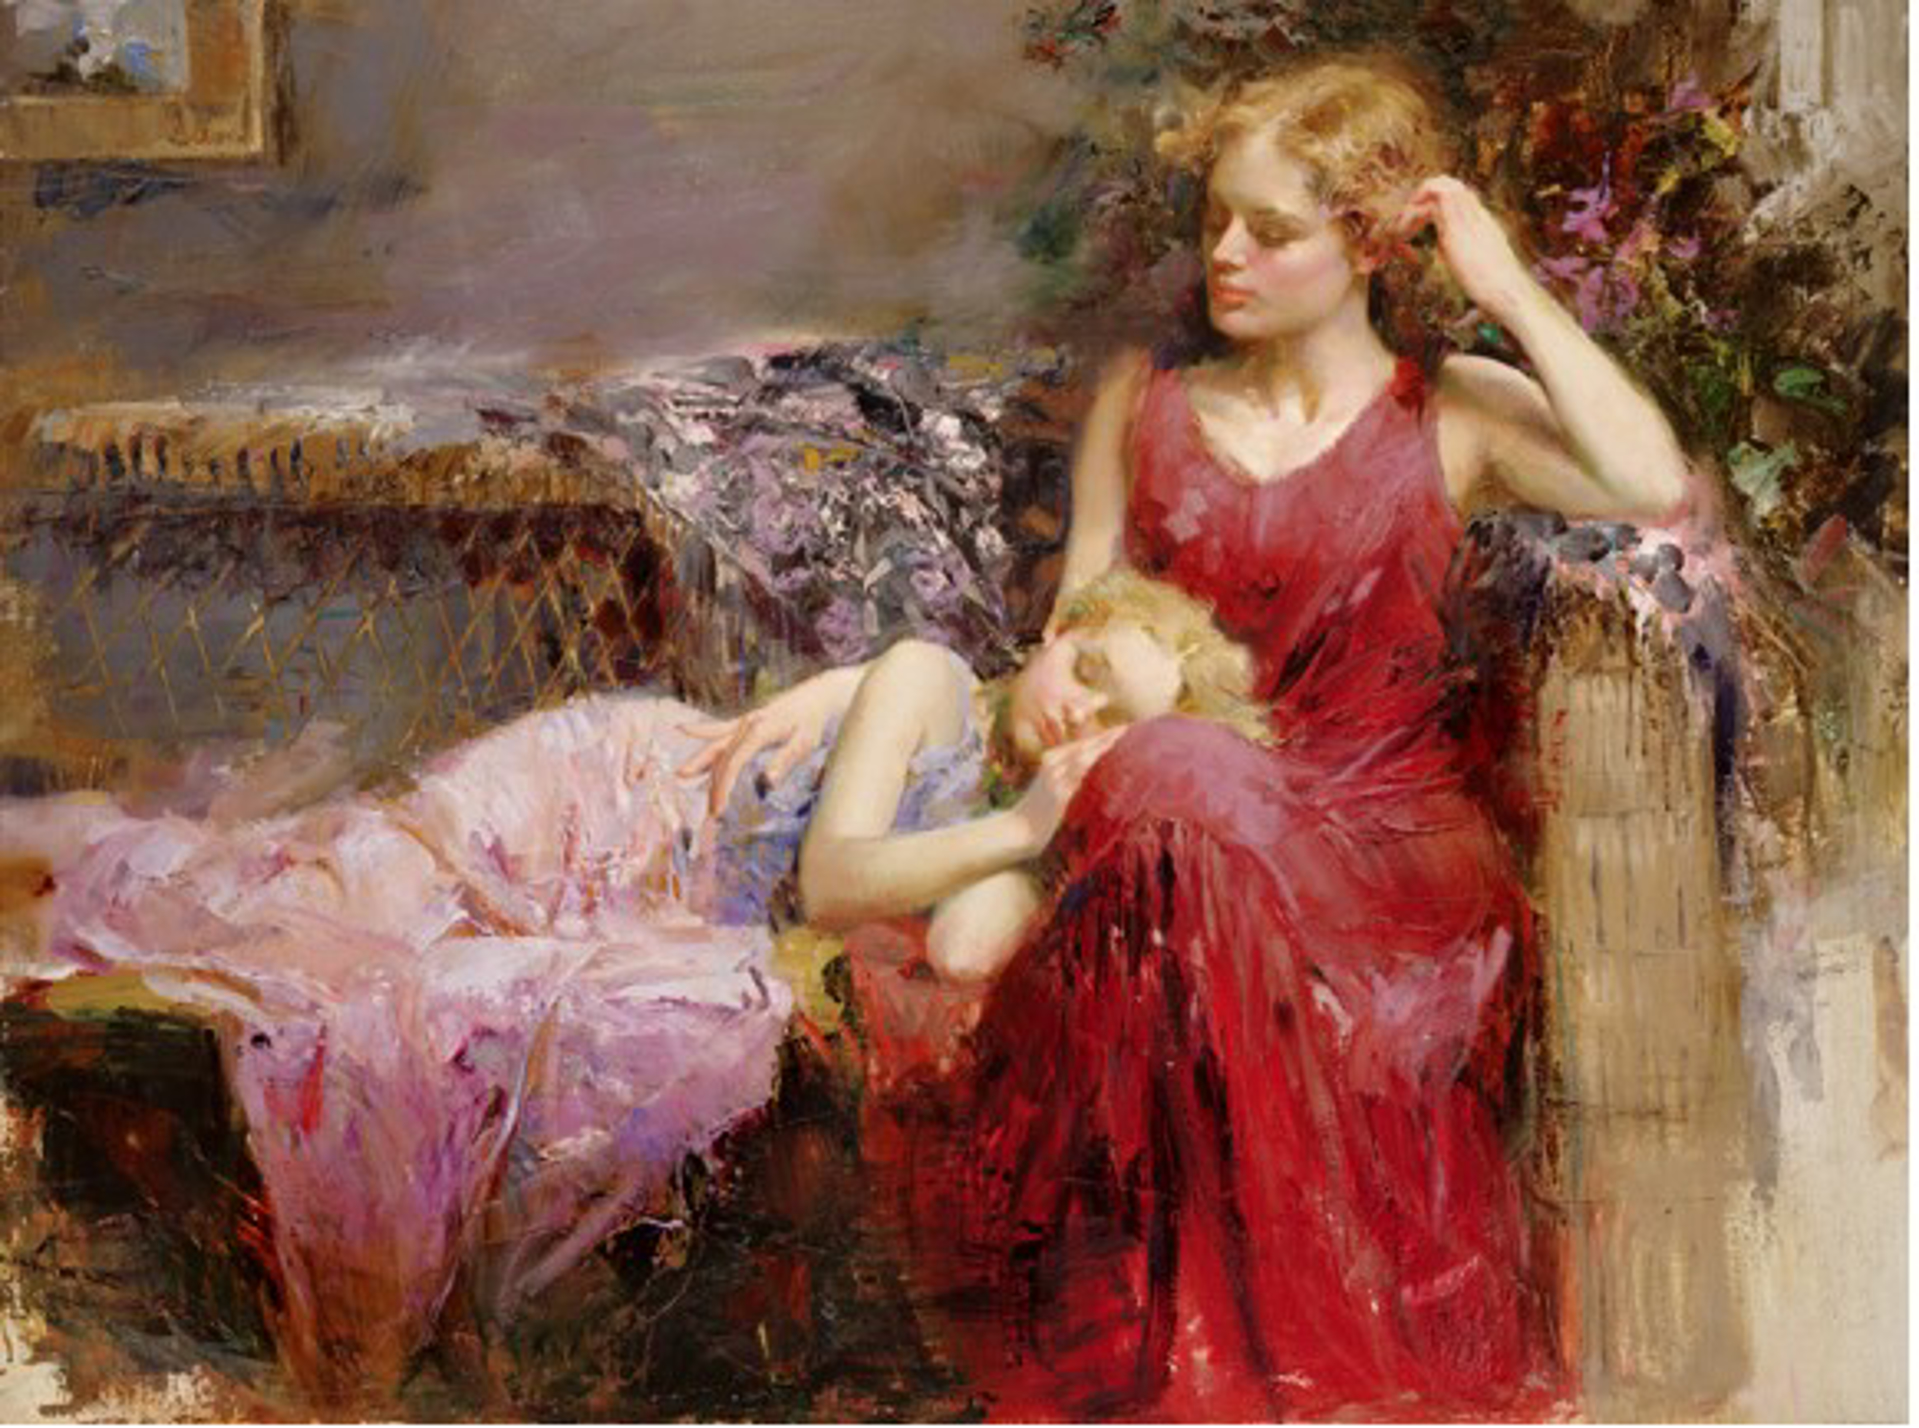 A Mother's Love by Pino